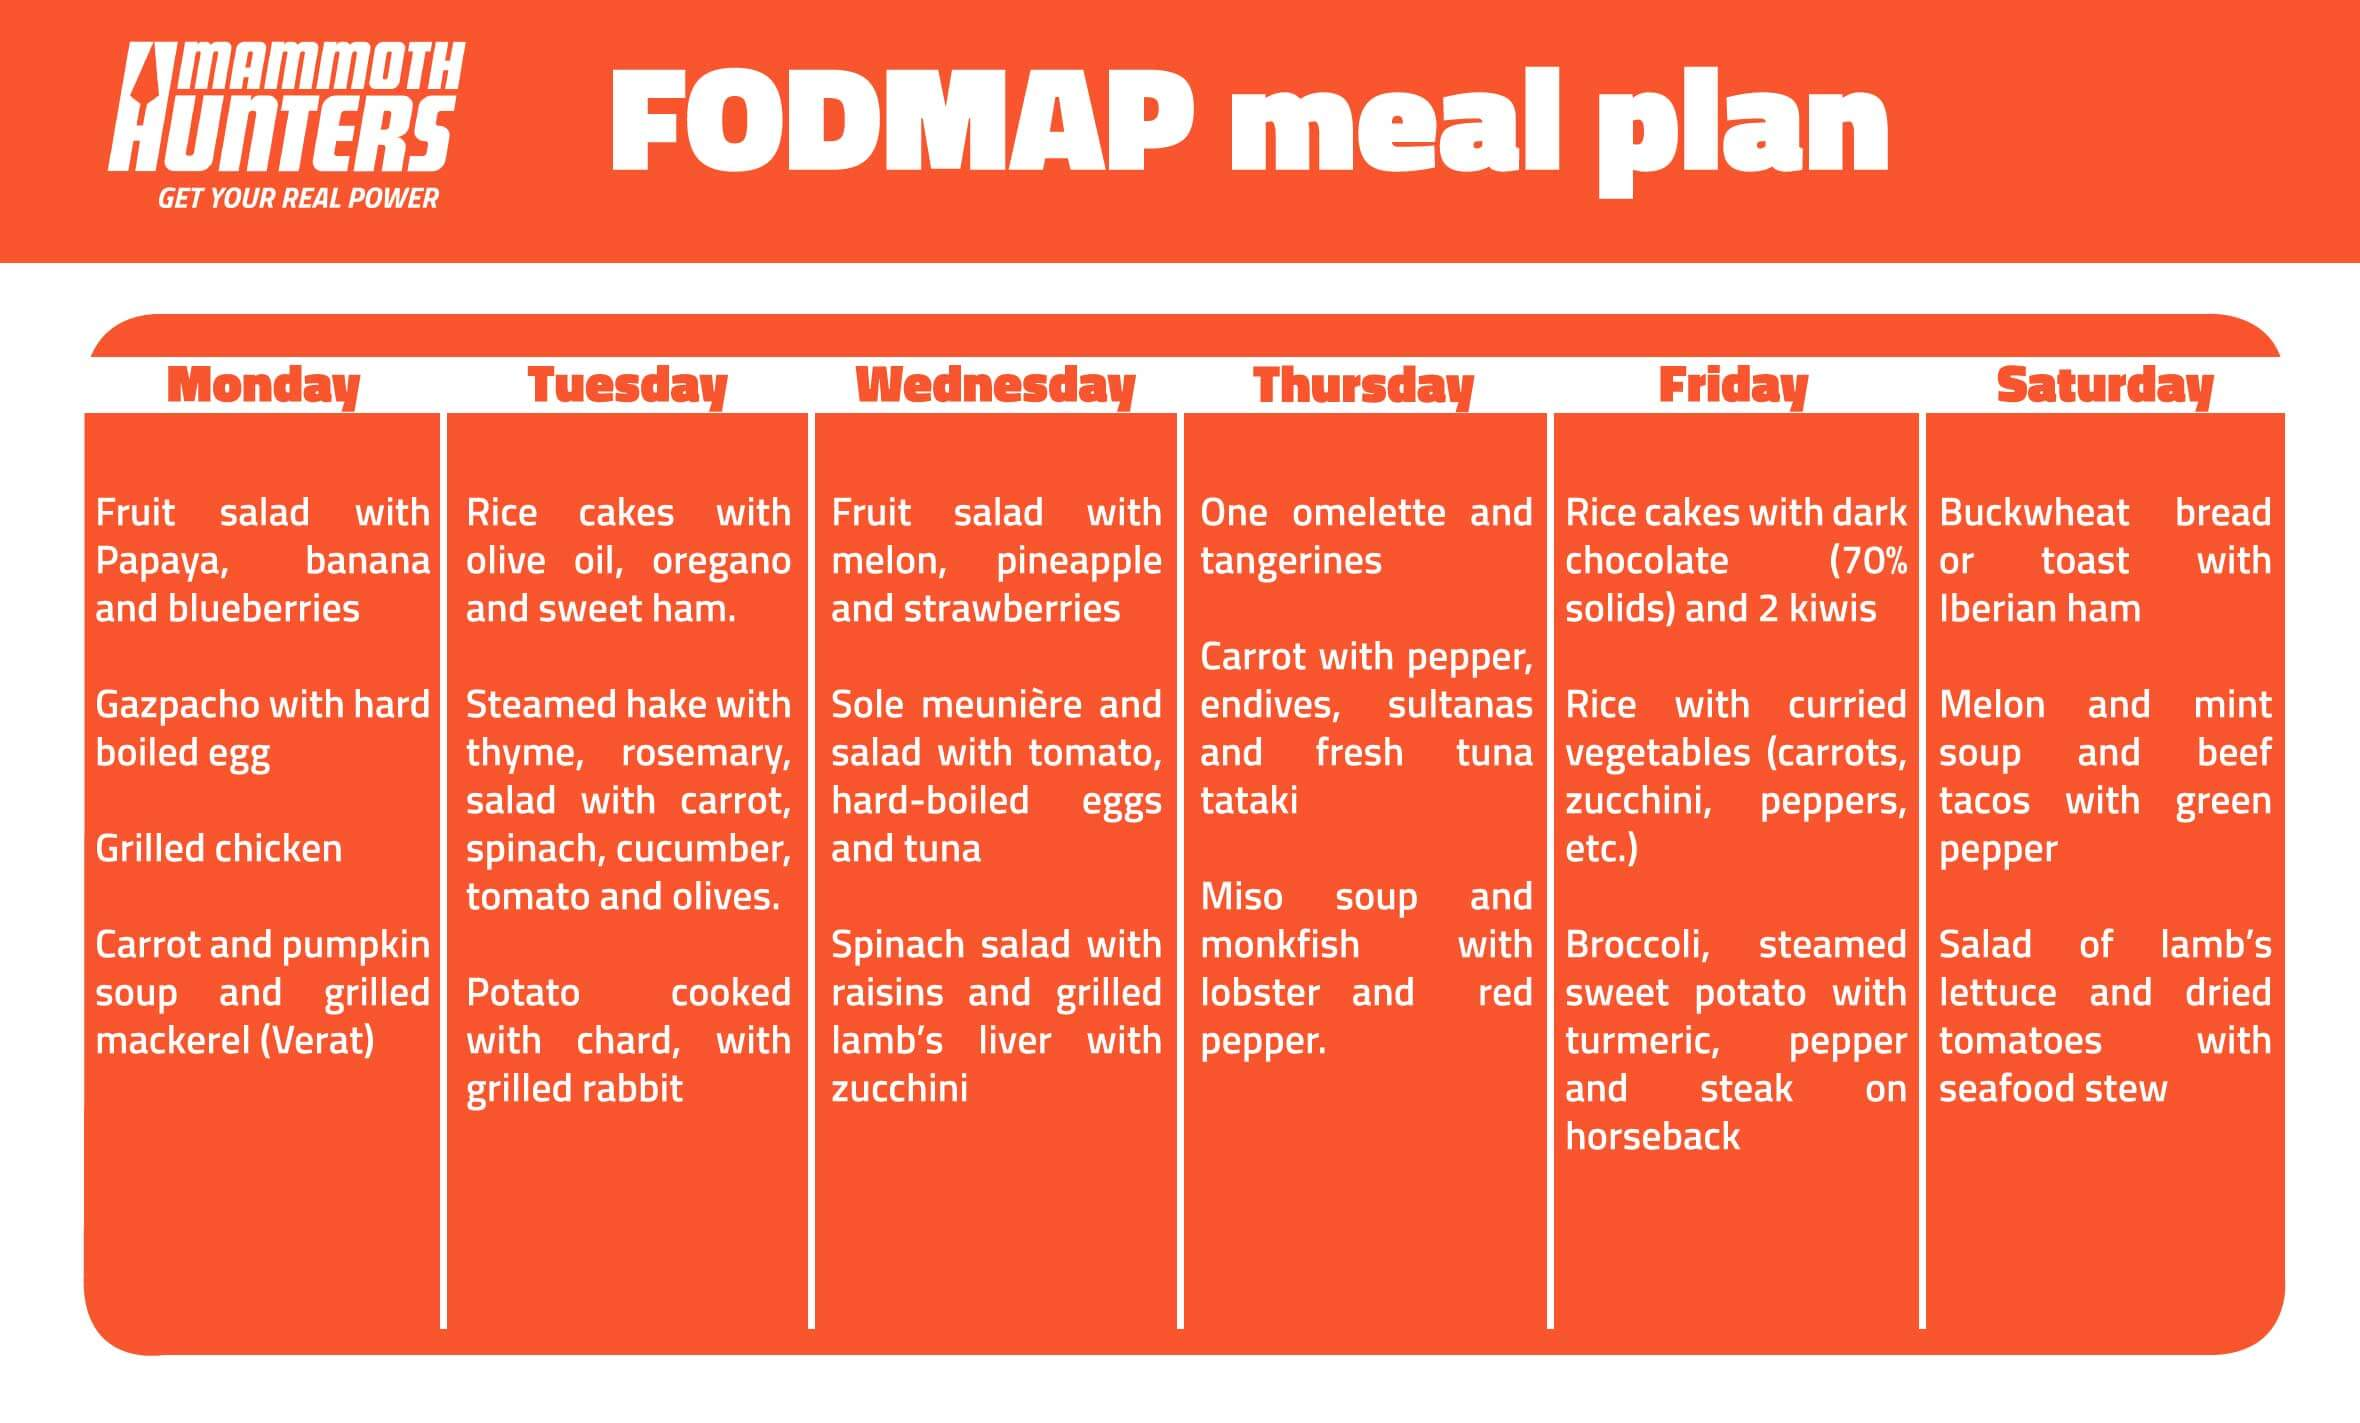 Fodmap-meal-plan.jpg